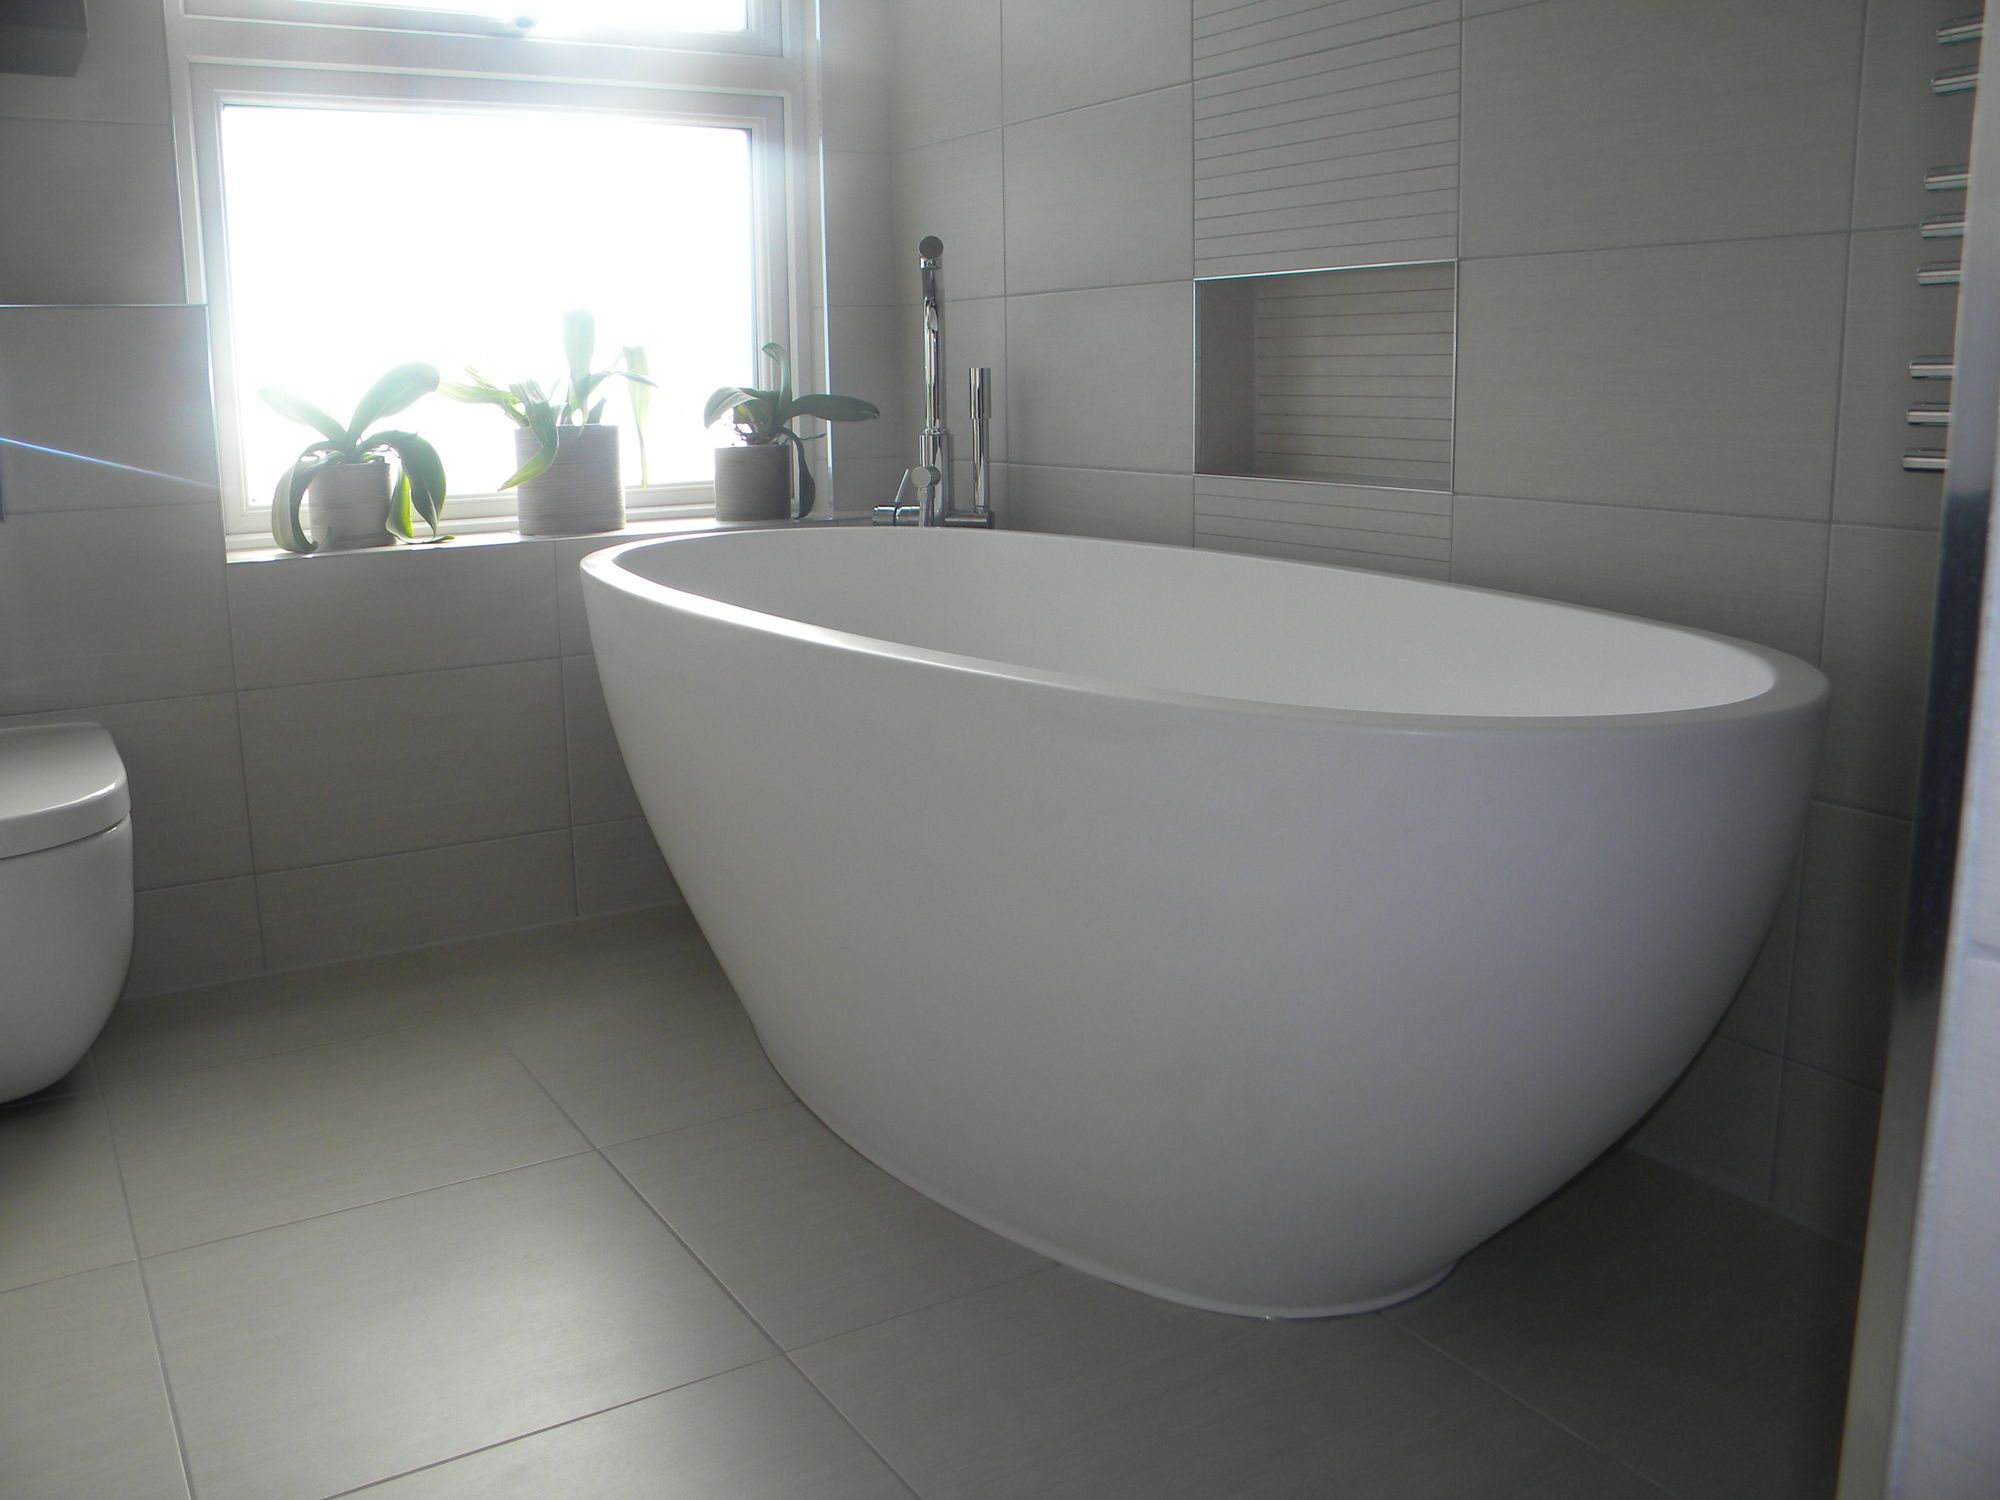 Free Standing Tubs Oval Stone Free Standing Soaking Bathtub Eco Free Standing Bath Tub Bathtubs For Small Bathrooms Deep Bathtub